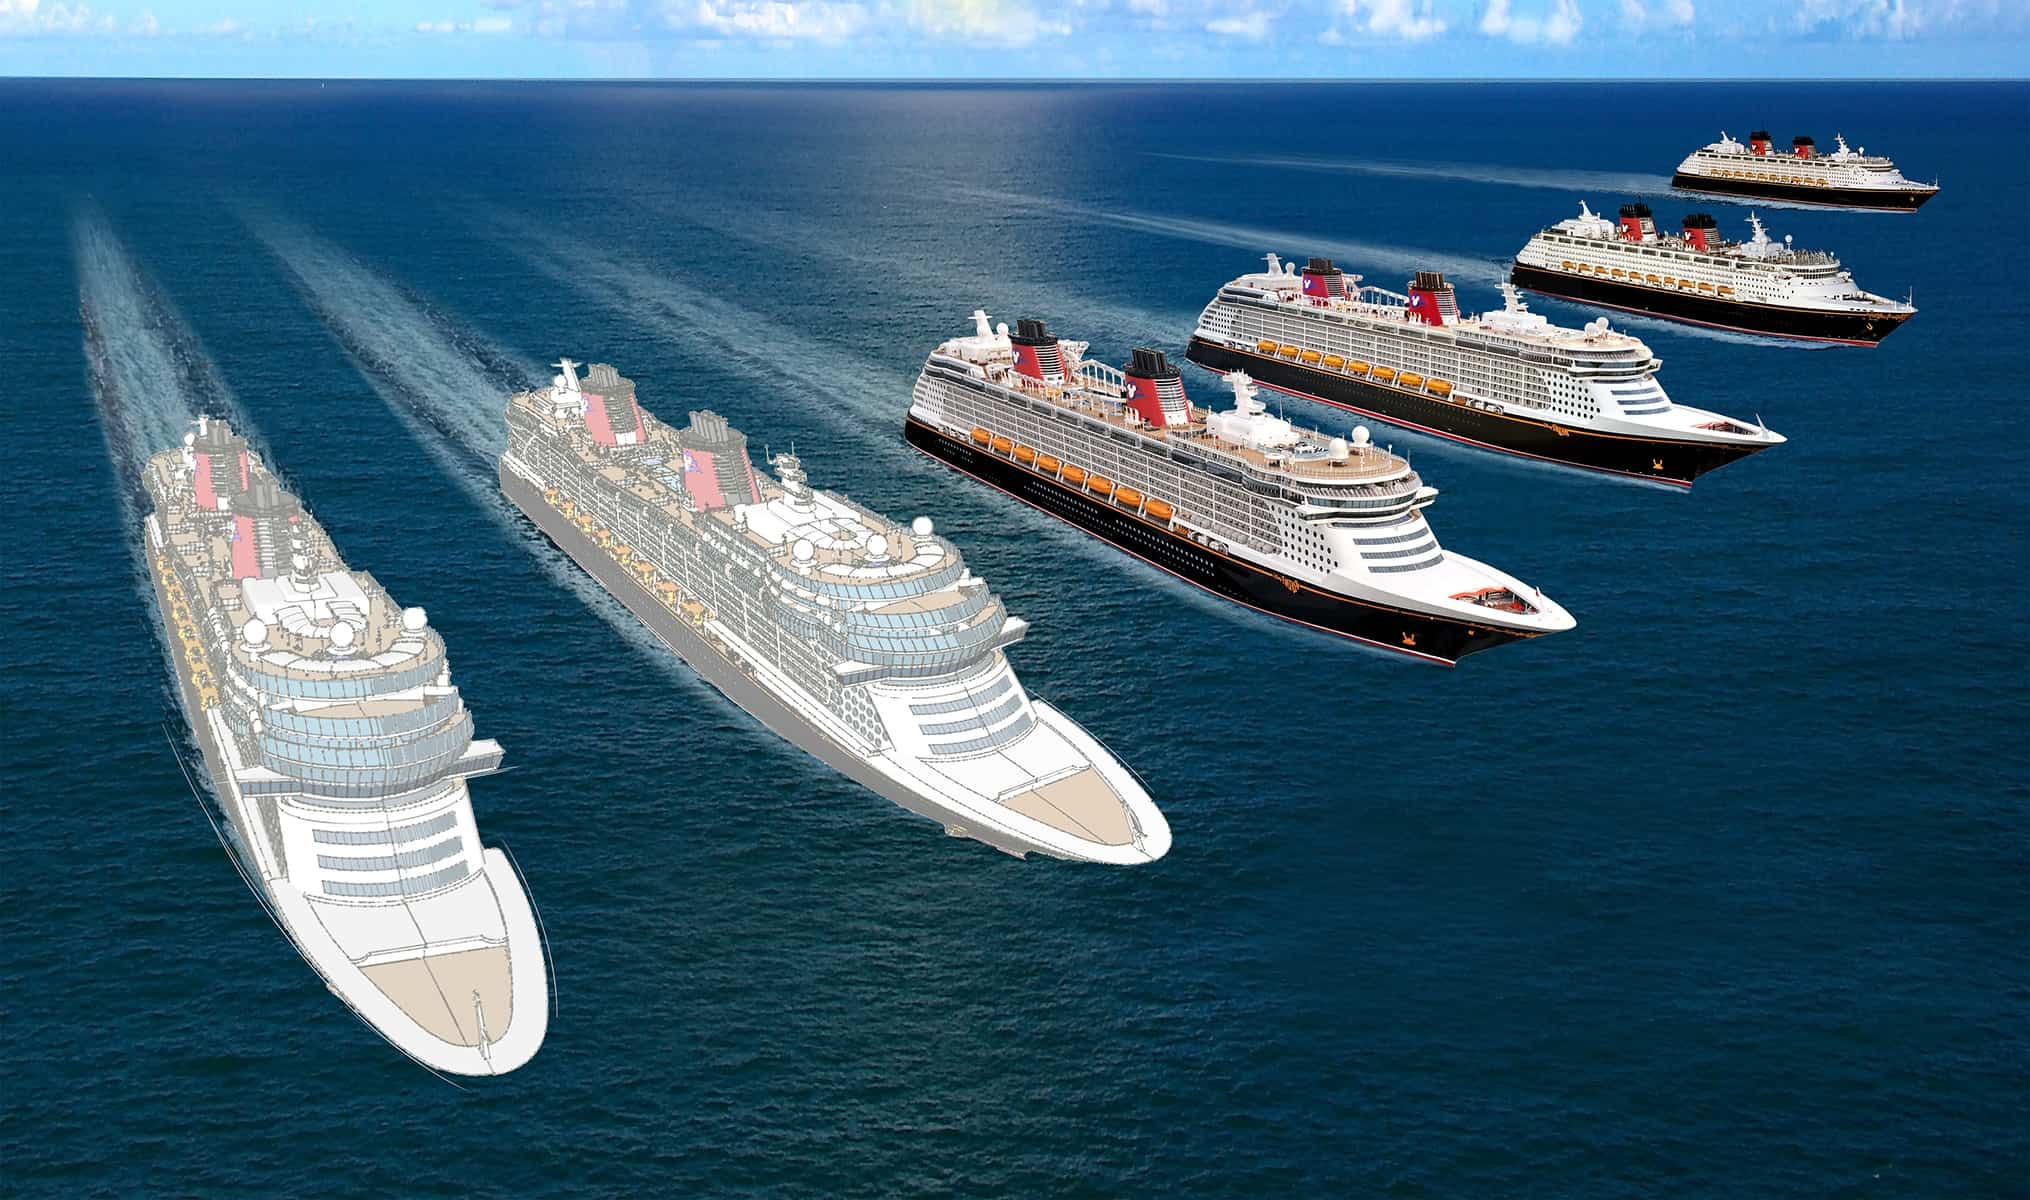 Two New Disney Cruise Line Ships on the Horizon